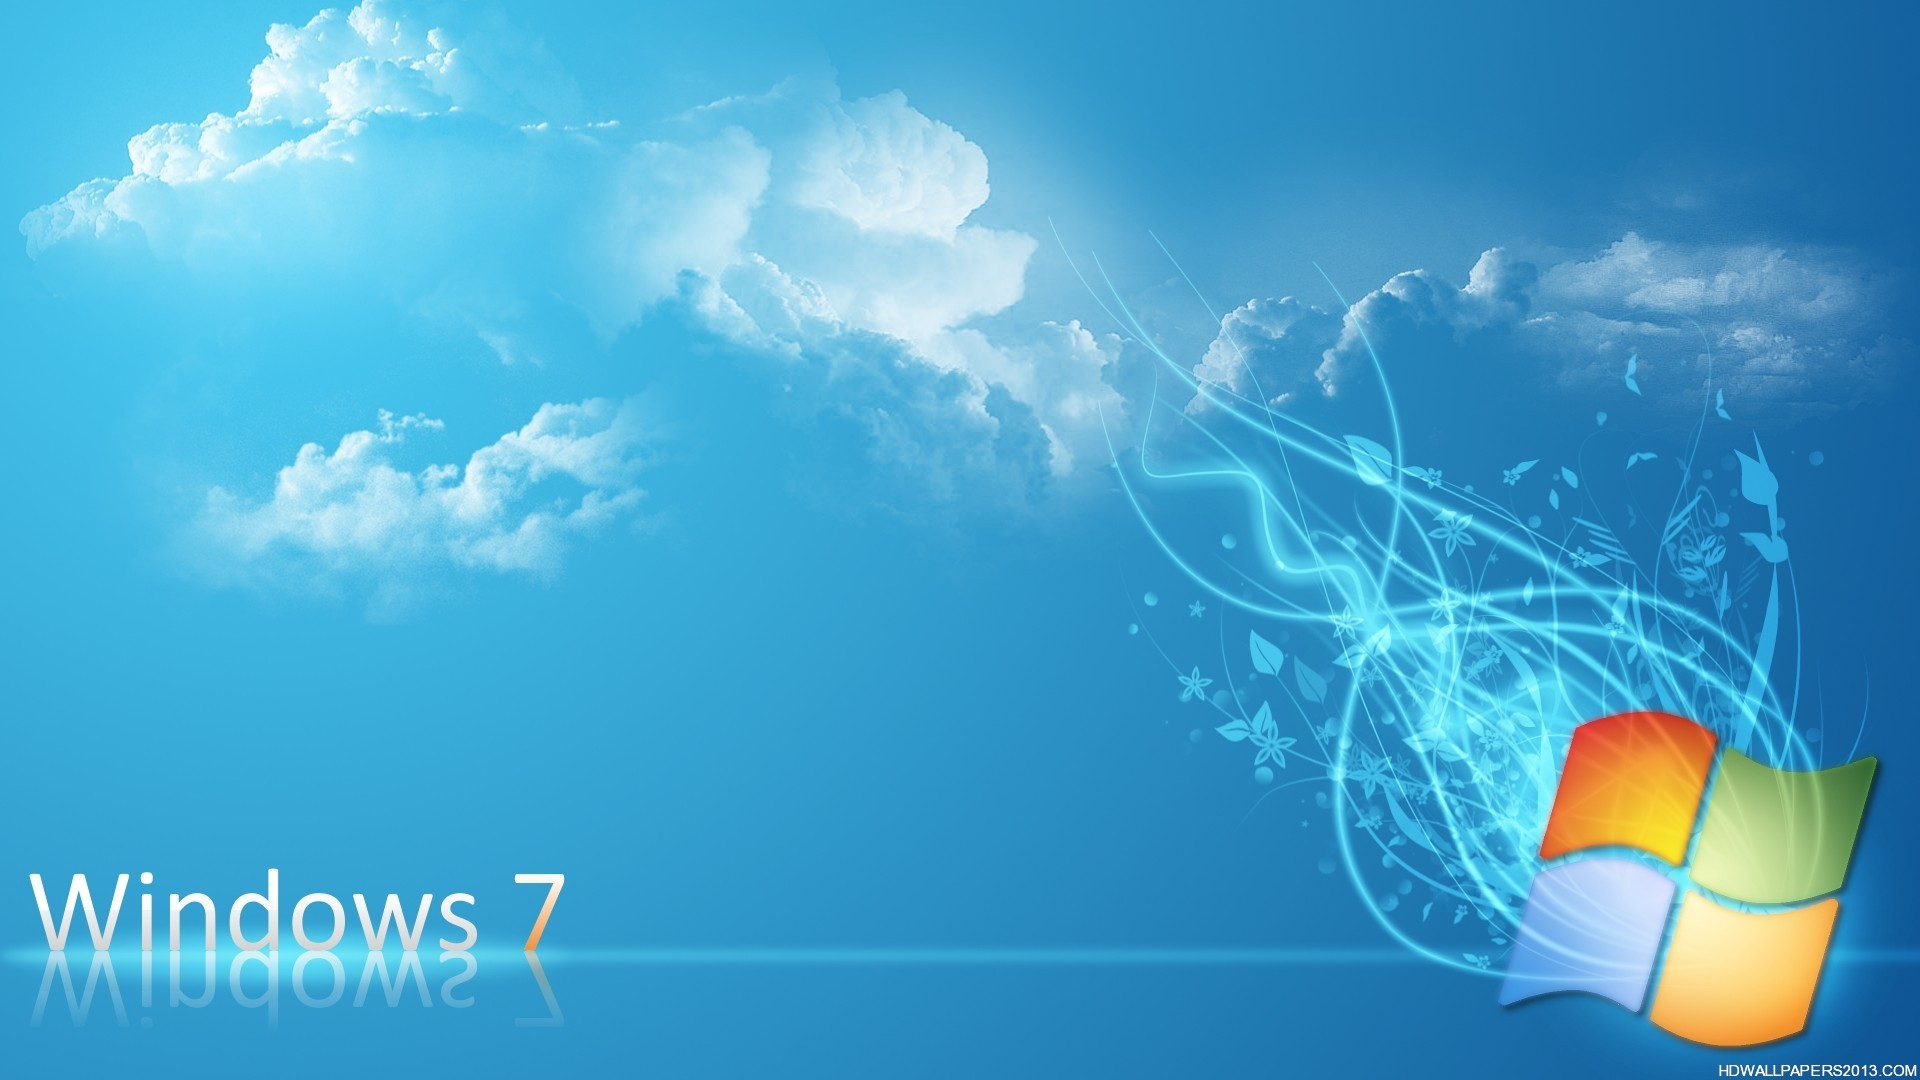 windows 7 wallpapers hd | high definition wallpapers, high